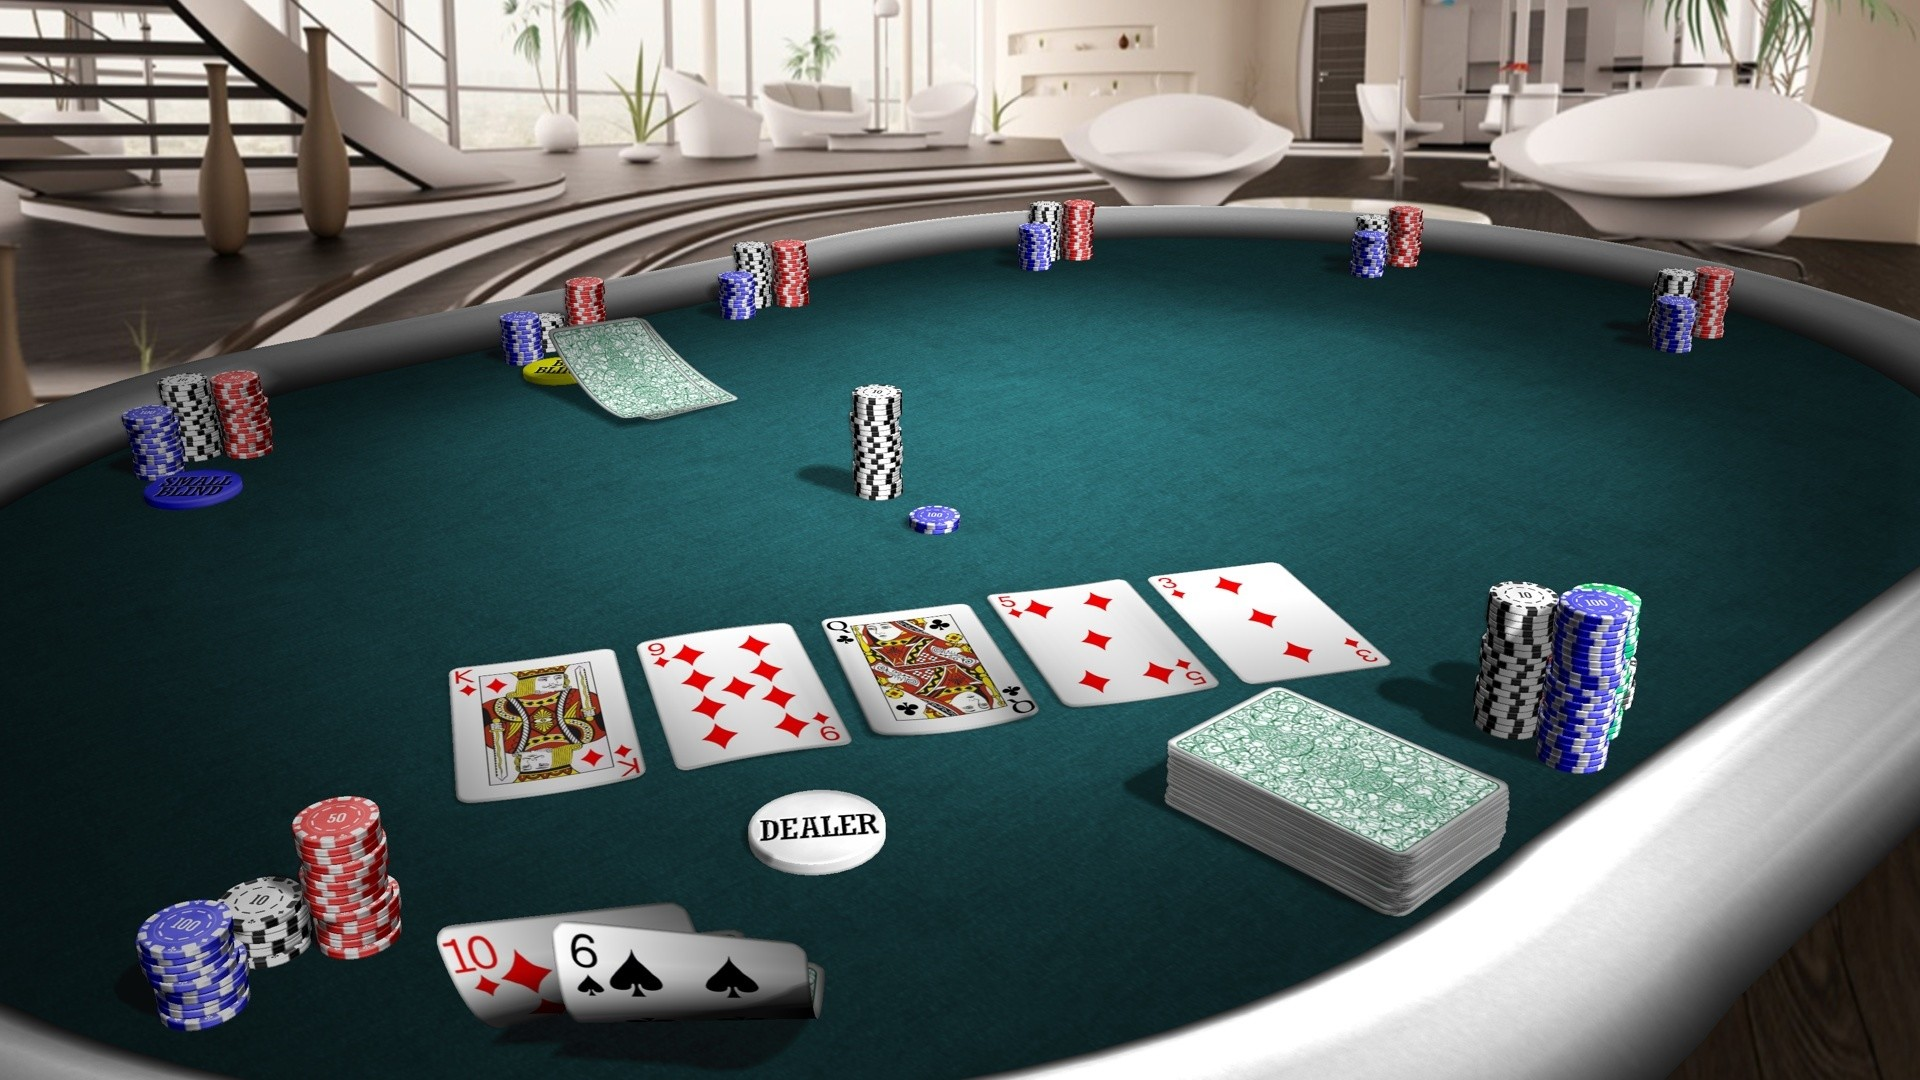 The United States Online Poker: Legal United States Poker Sites 2020 News & Analysis